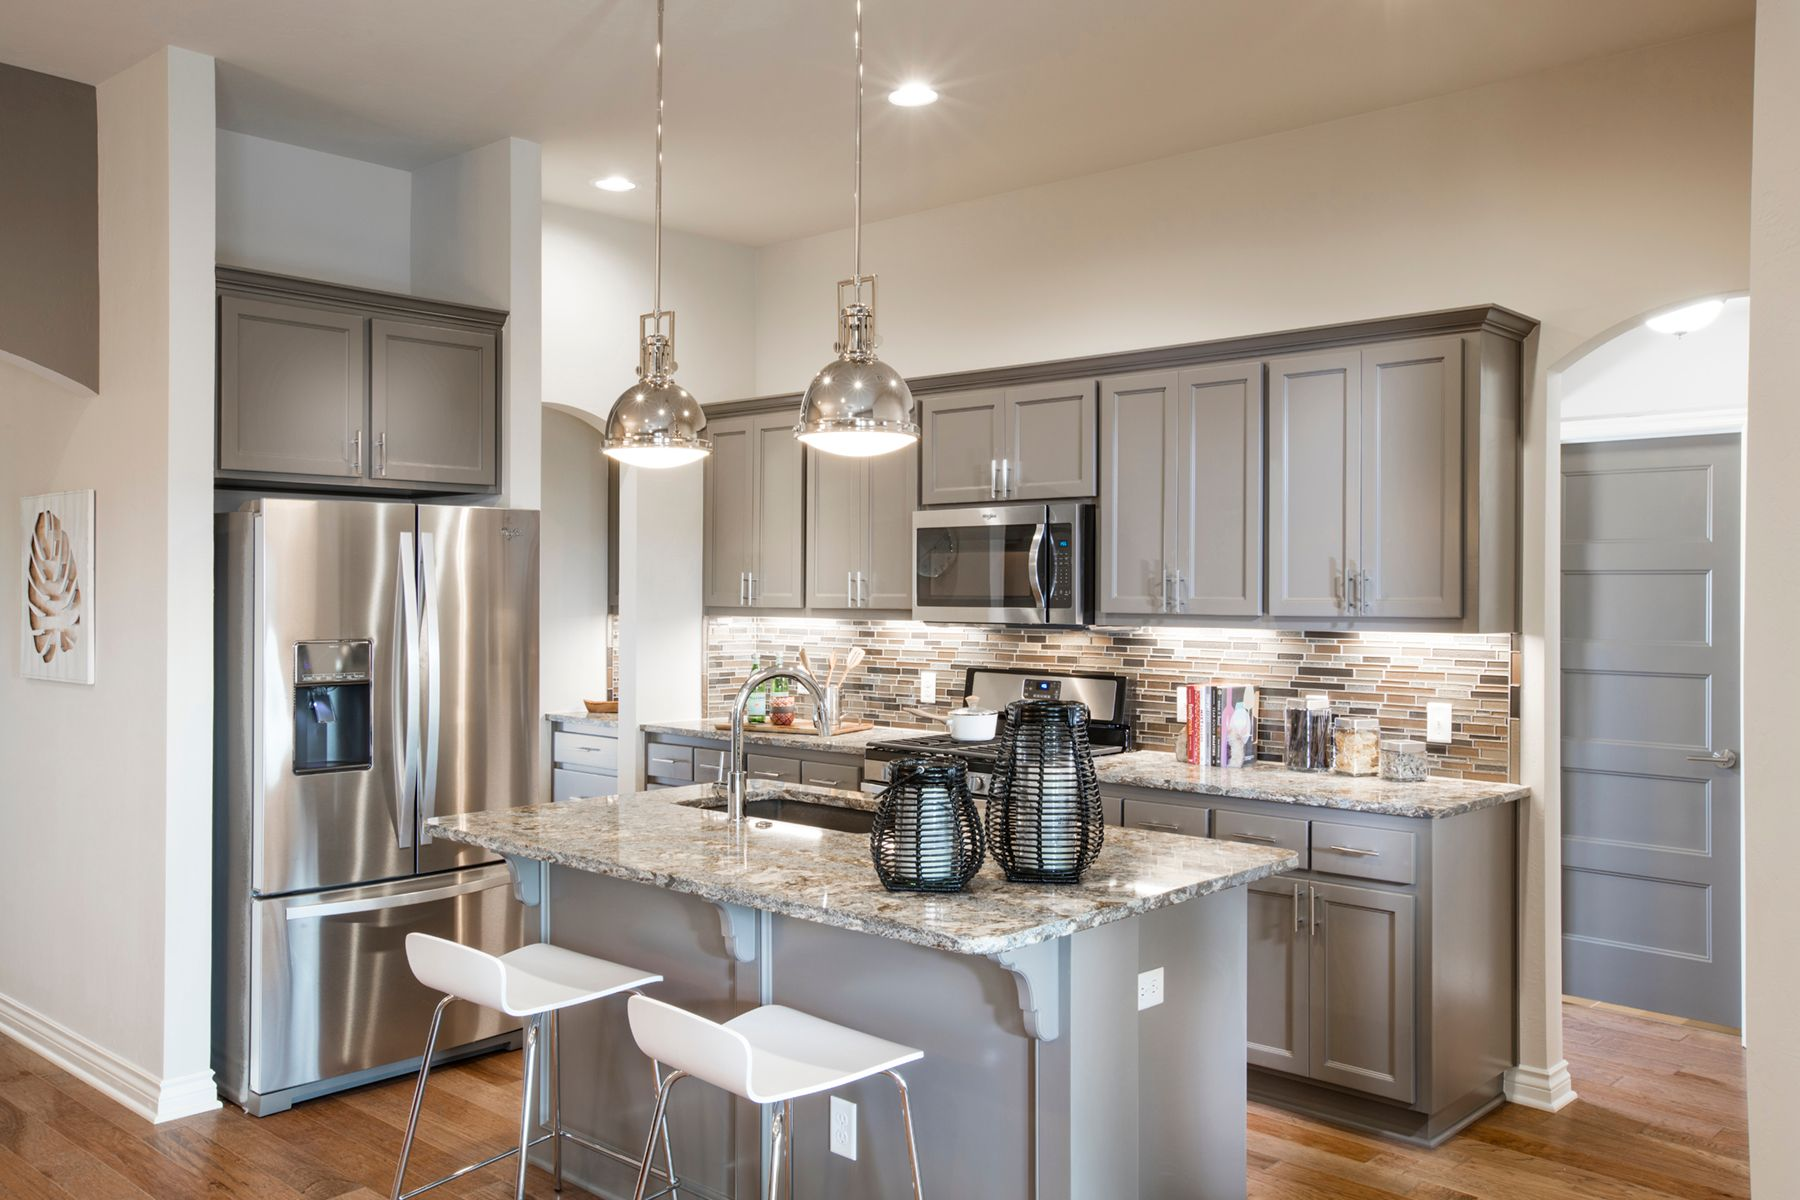 Kitchen featured in the Frederickson By Ideal Homes in Oklahoma City, OK